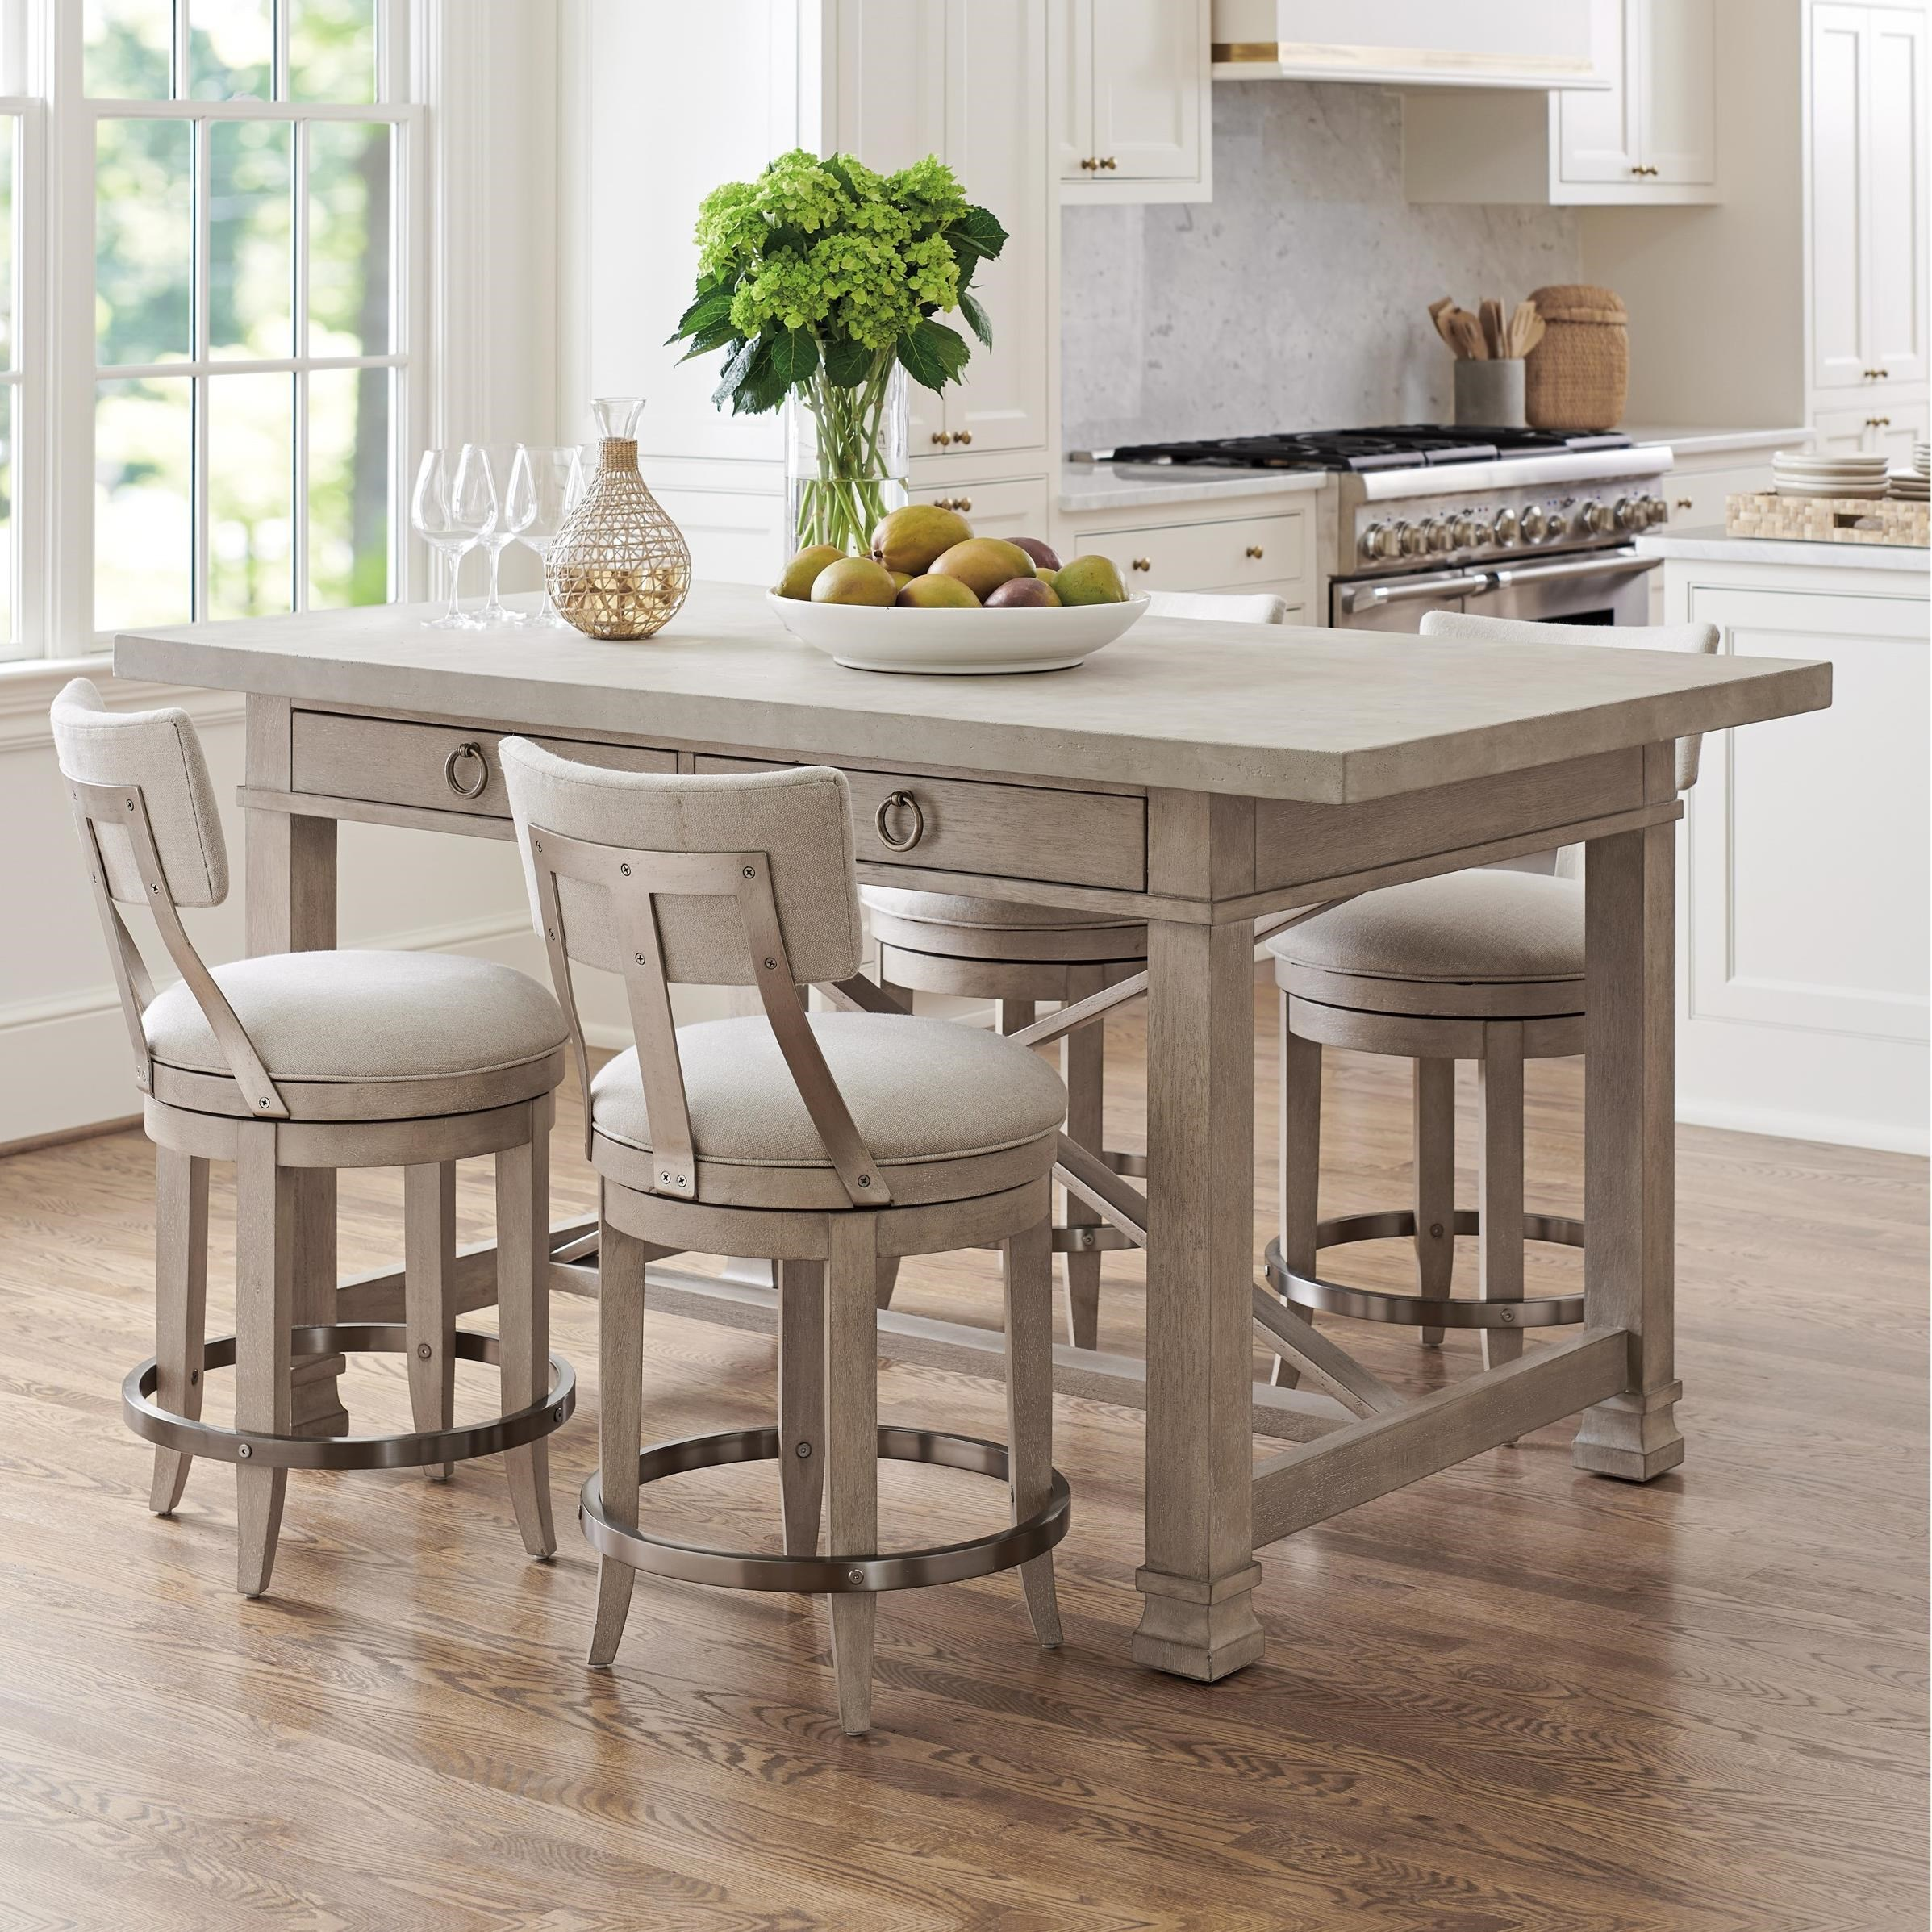 Malibu 5-Piece Counter Height Dining Set by Barclay Butera at Baer's Furniture